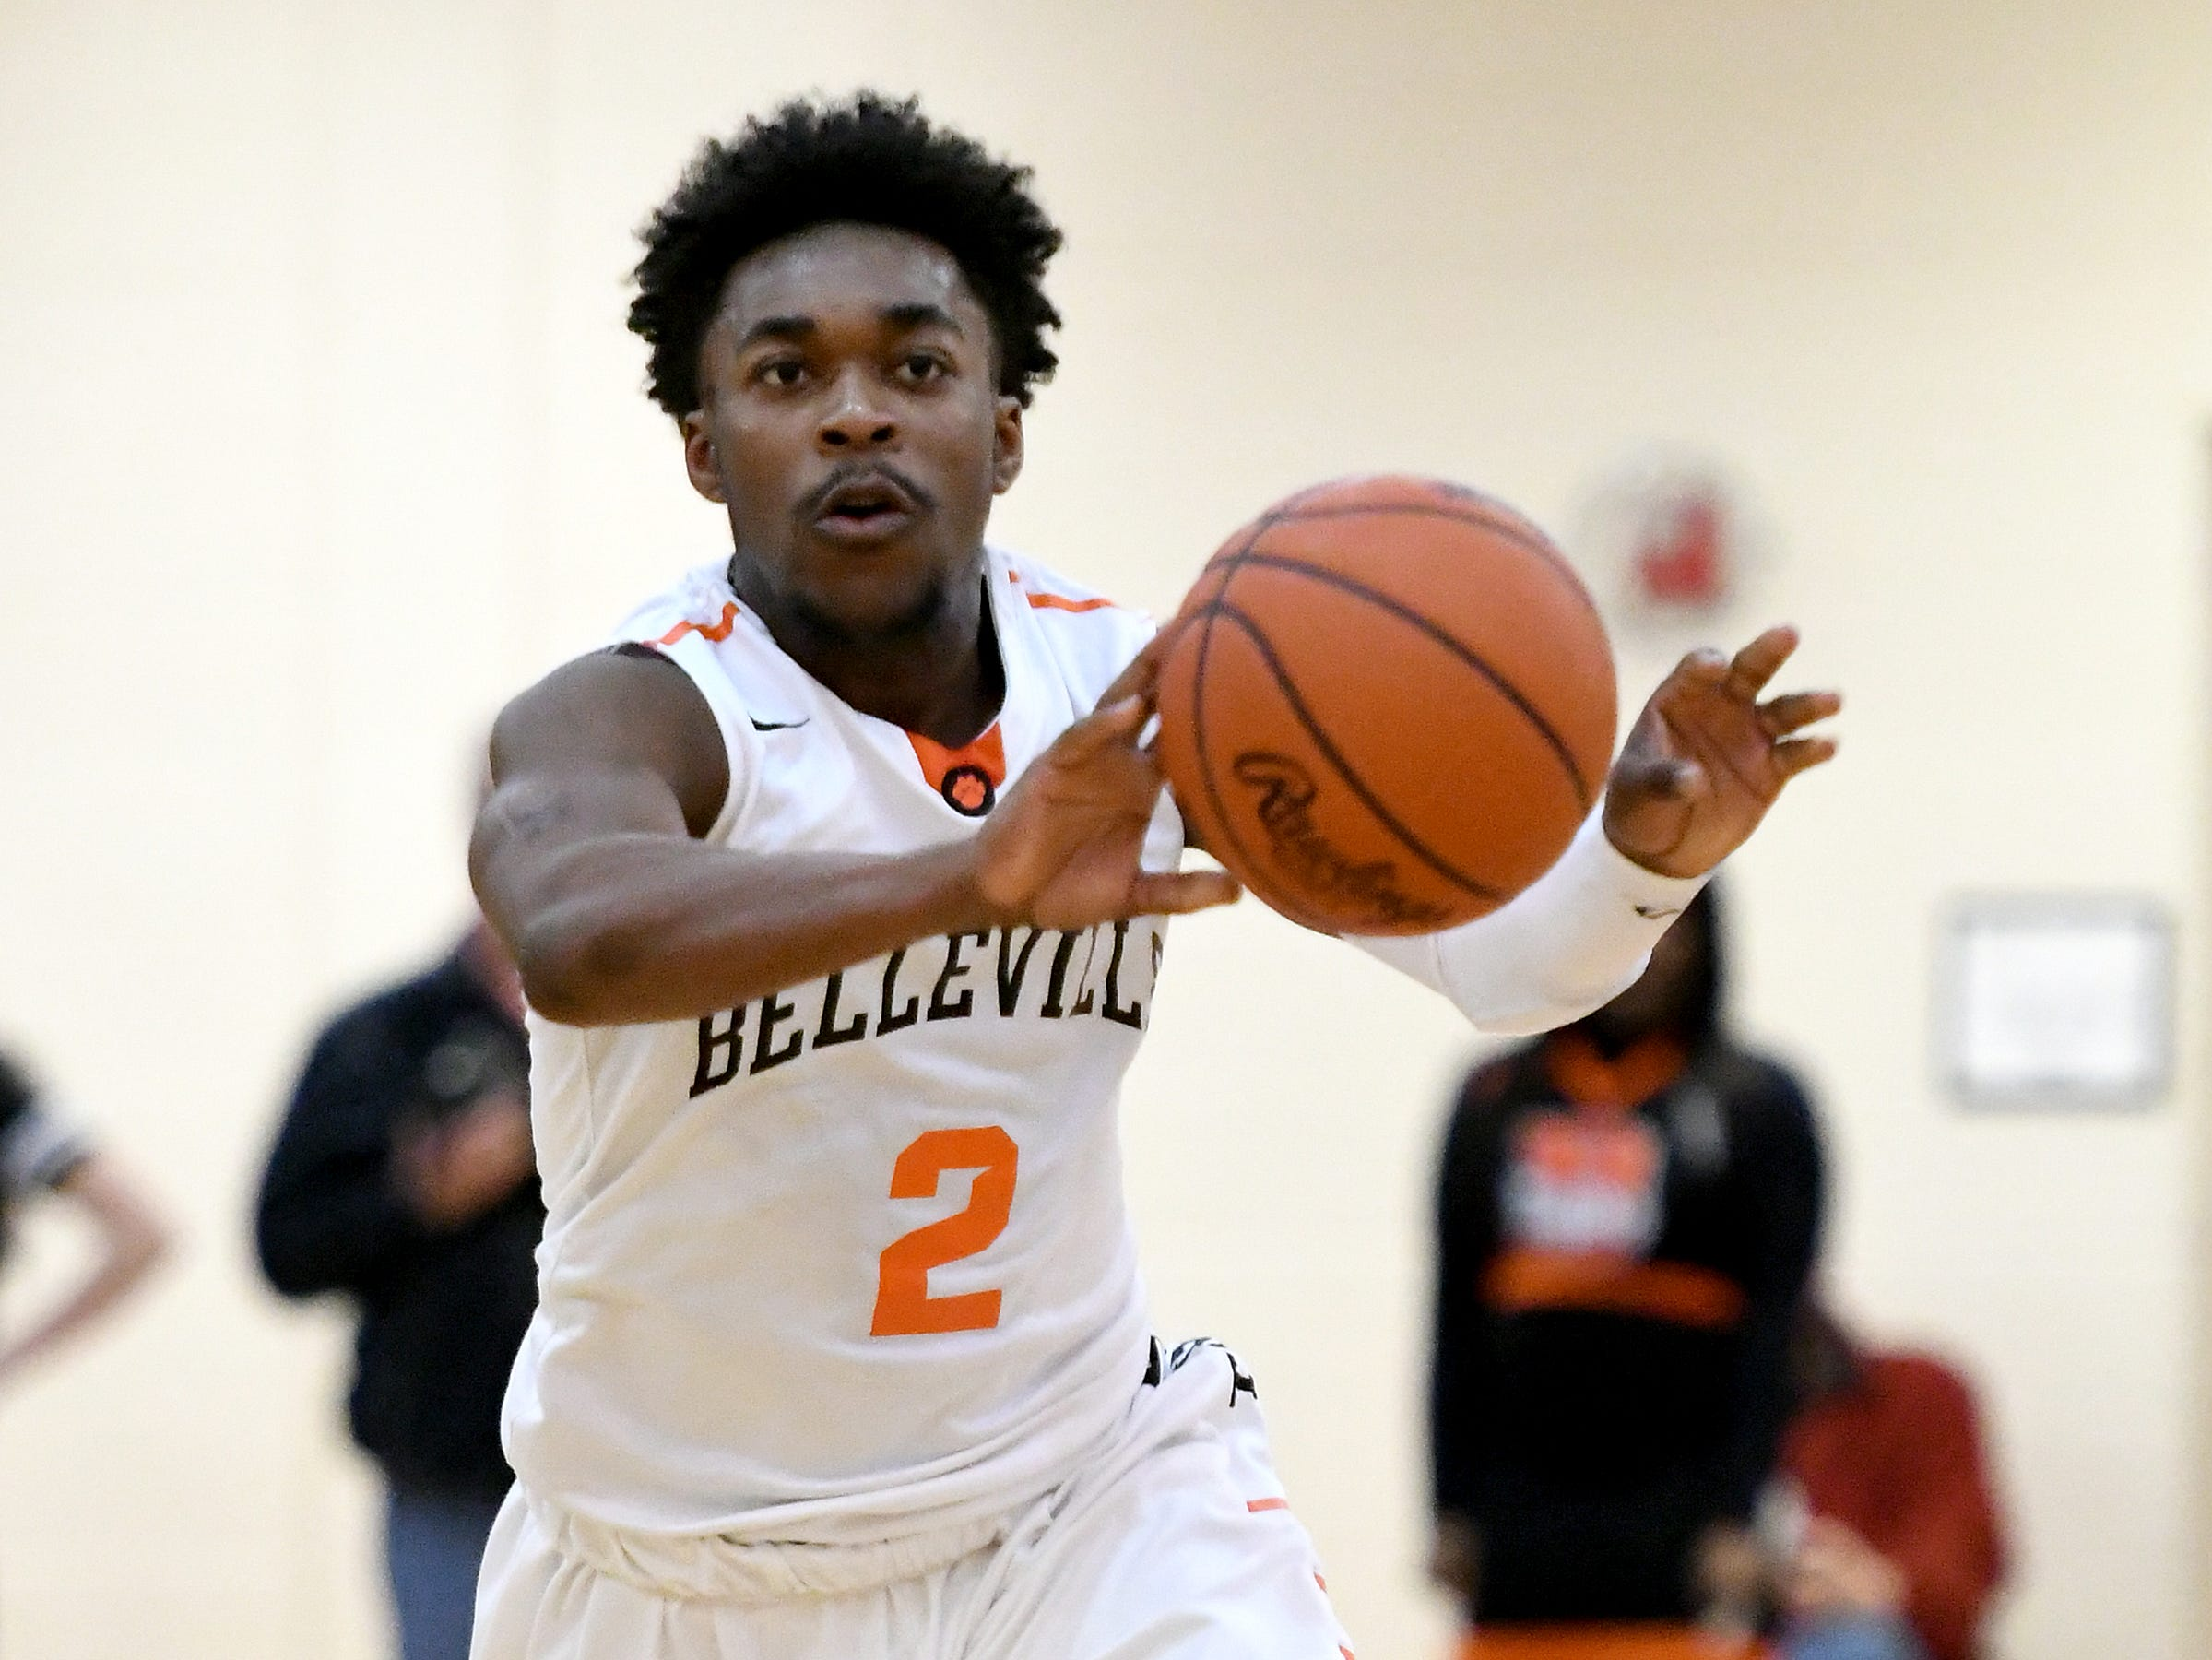 Belleville High School's Lorenzo Wright in action during their 81-78 overtime win over John Glenn High School.